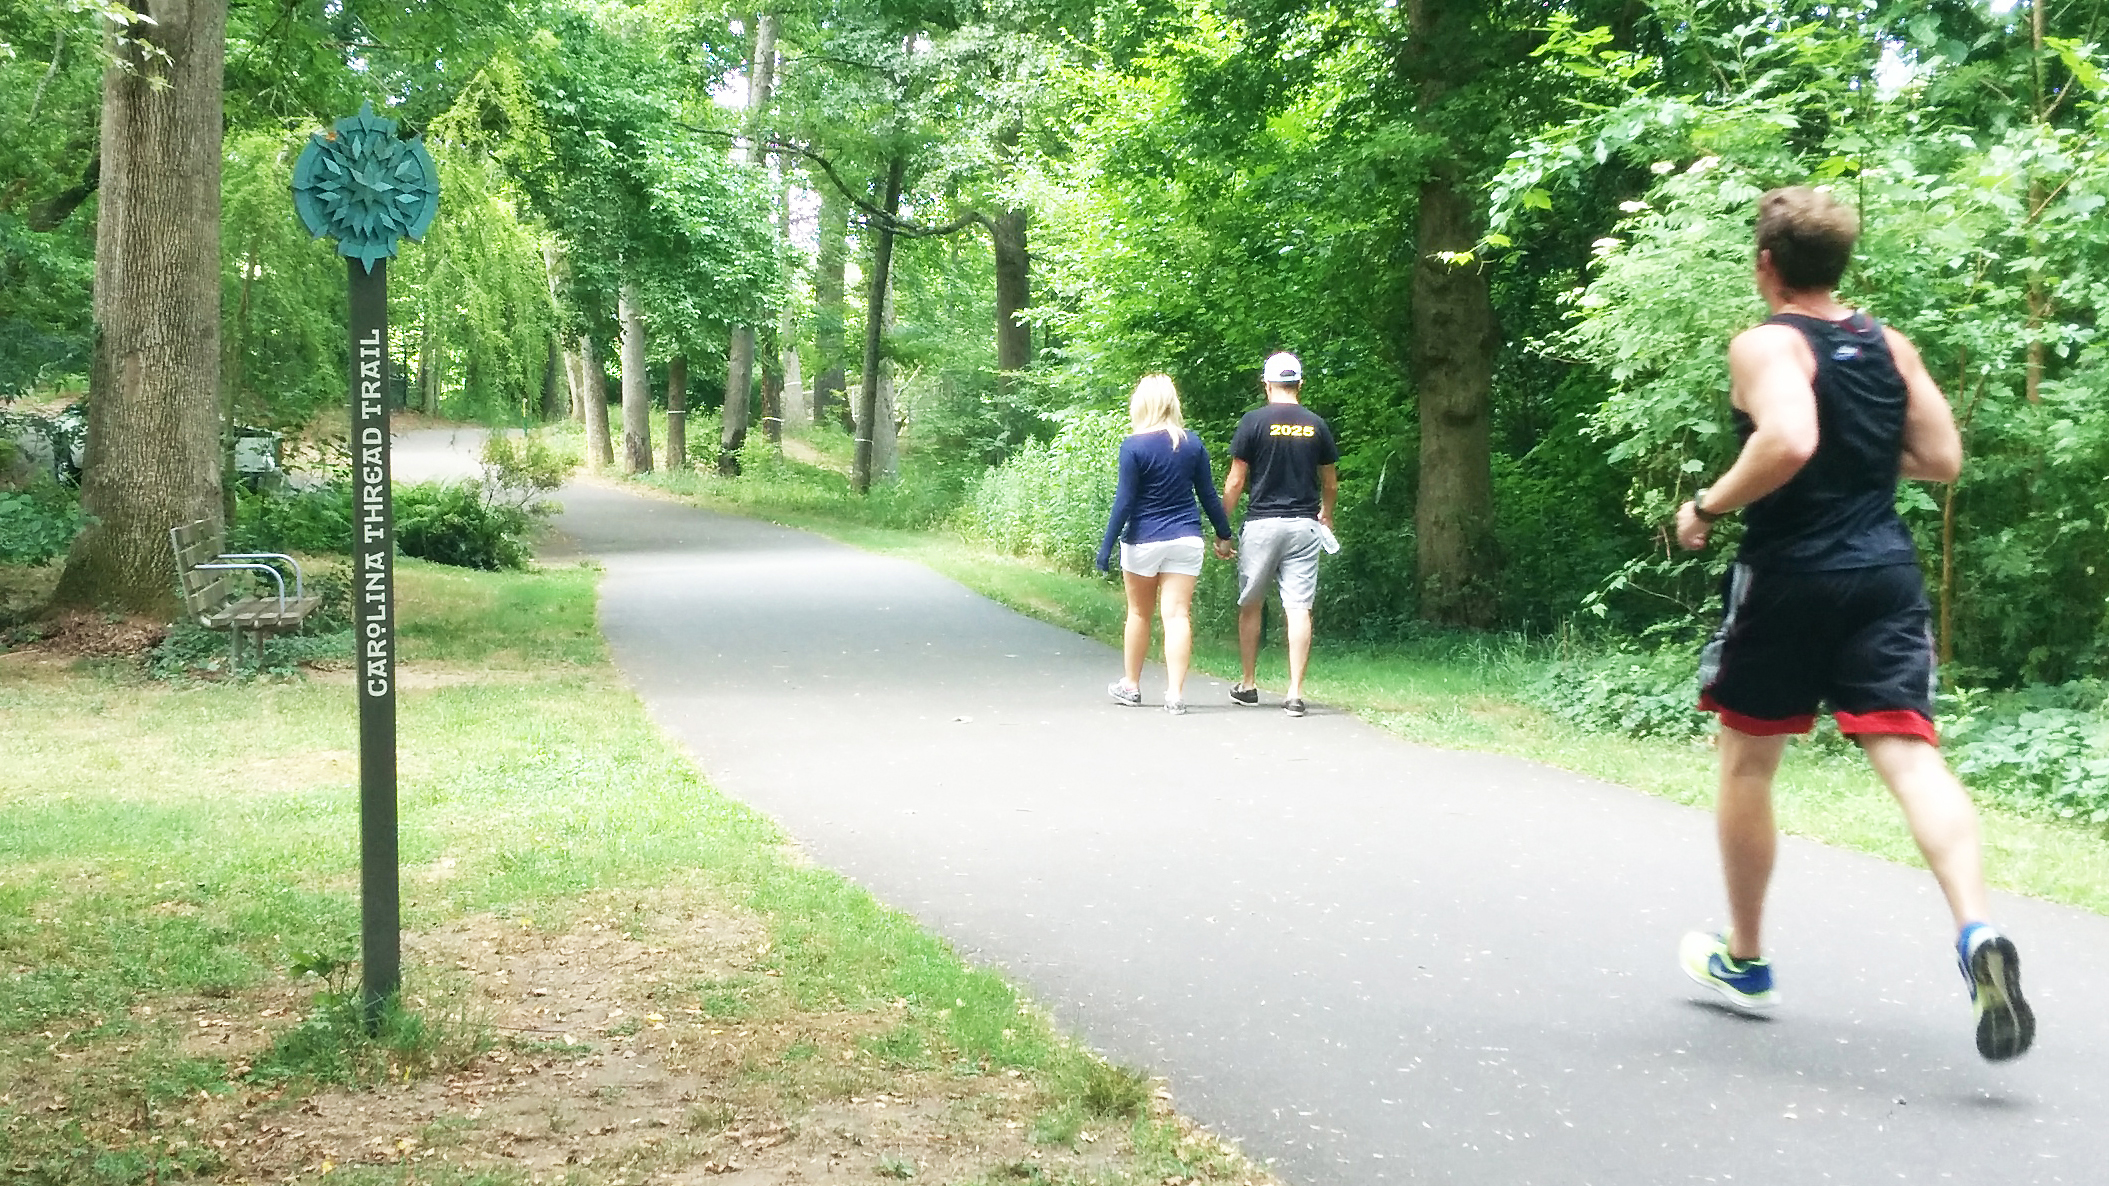 """jogger and walkers pass the """"Carolina Thread Trail"""" marker of a tree lined greenway"""